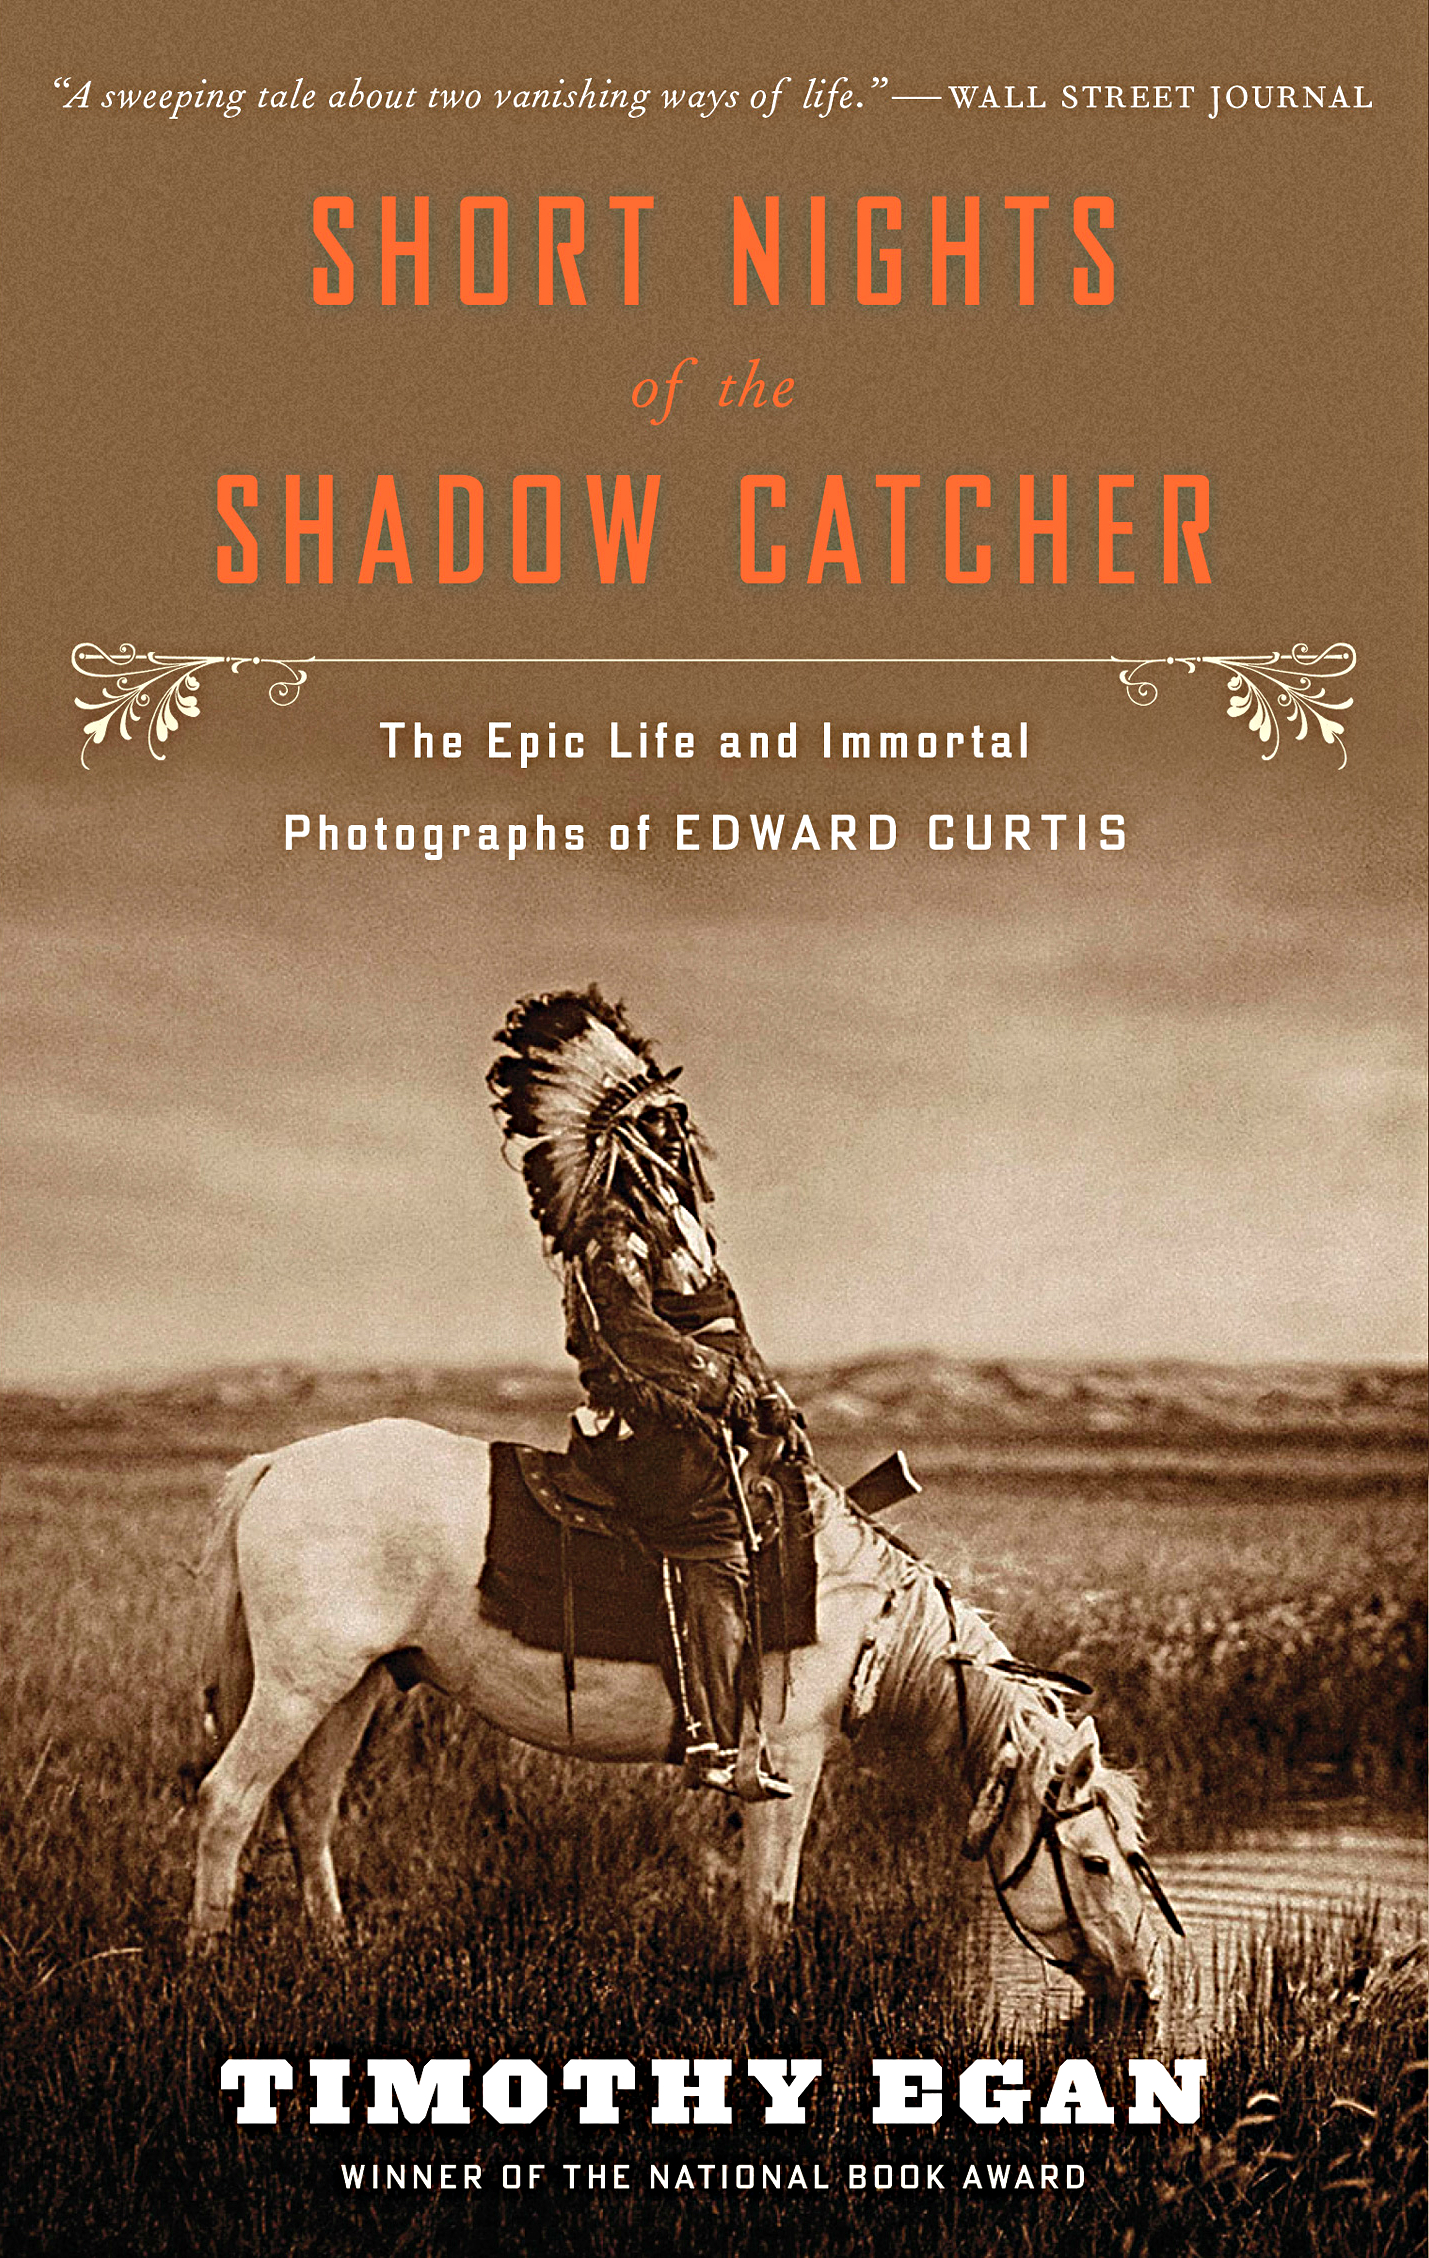 Photo: 'Short Nights of the Shadow Catcher' Book Cover